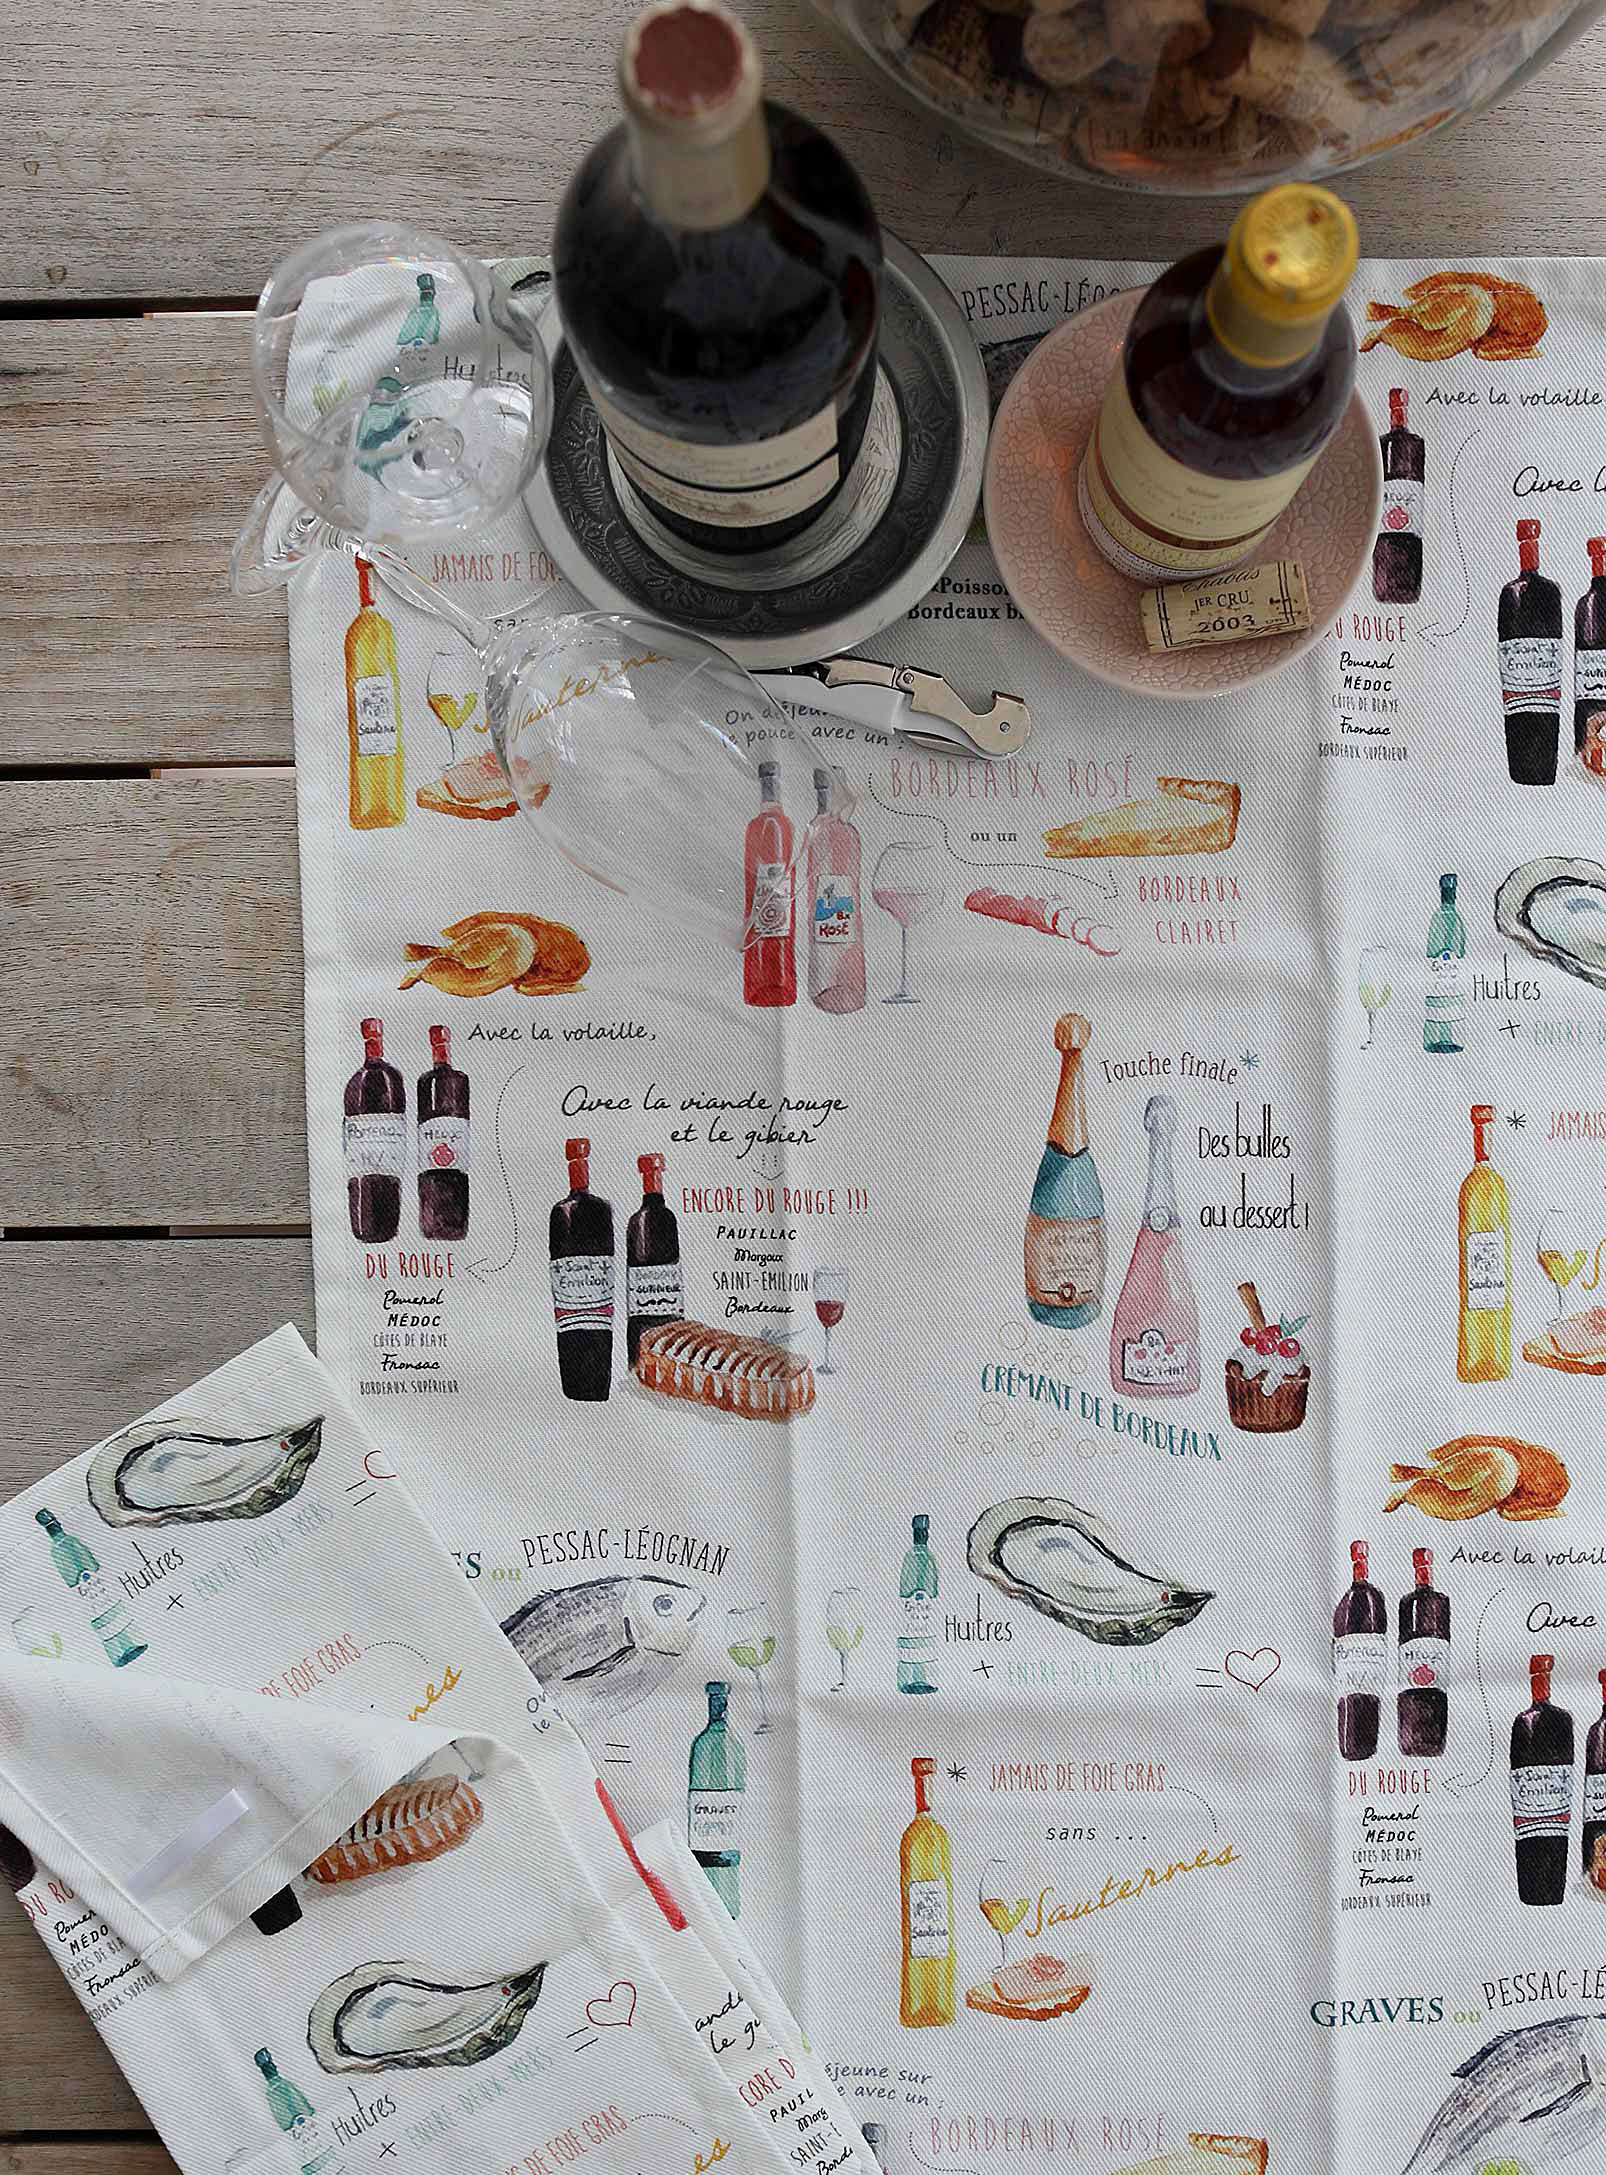 tea towel with a bottle of wine and champagne